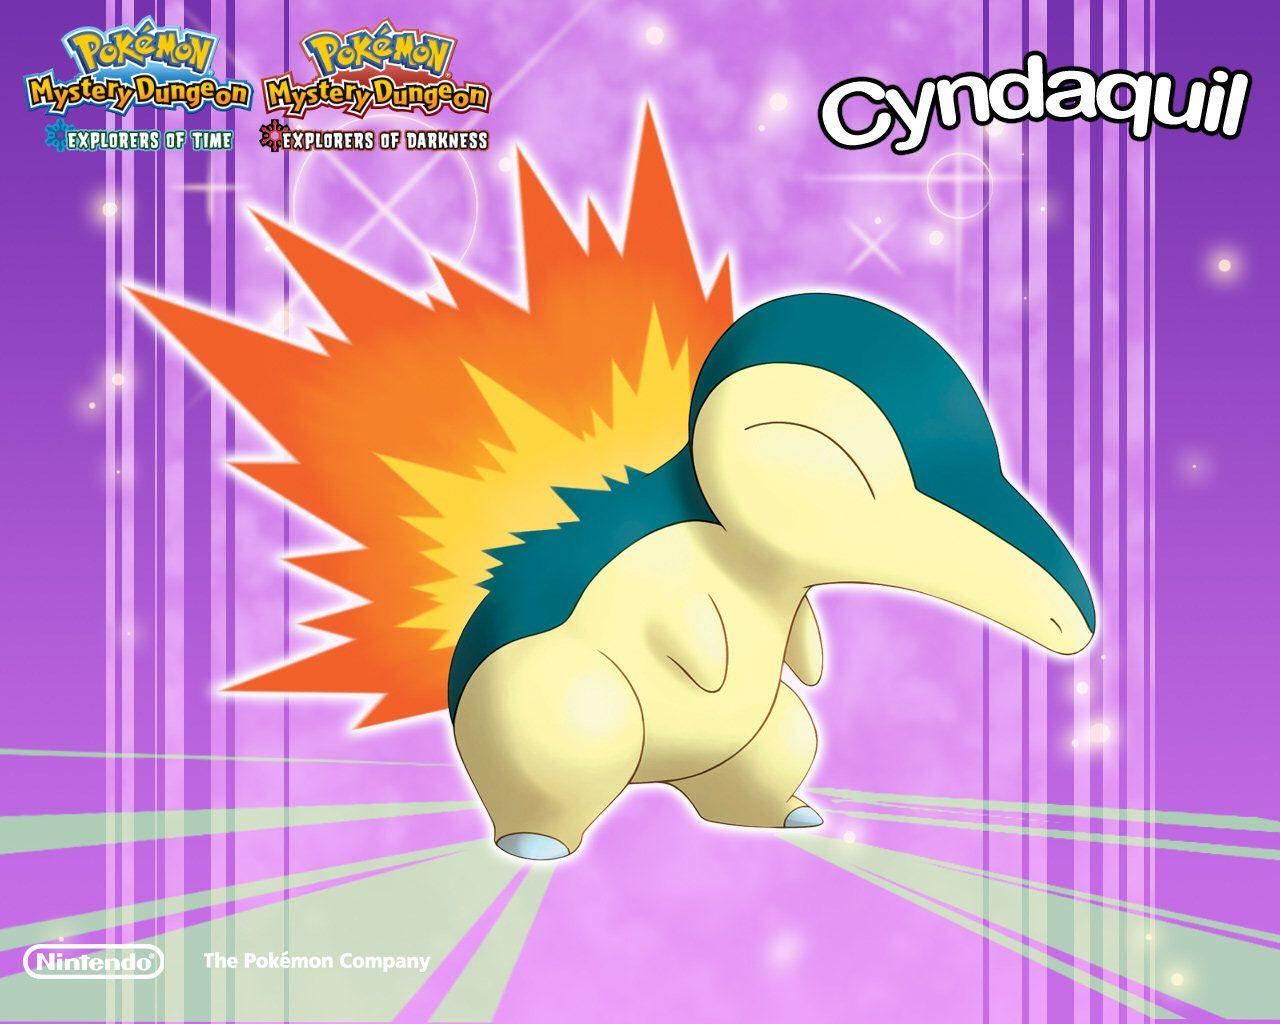 Cyndaquil Wallpapers at Wallpaperist